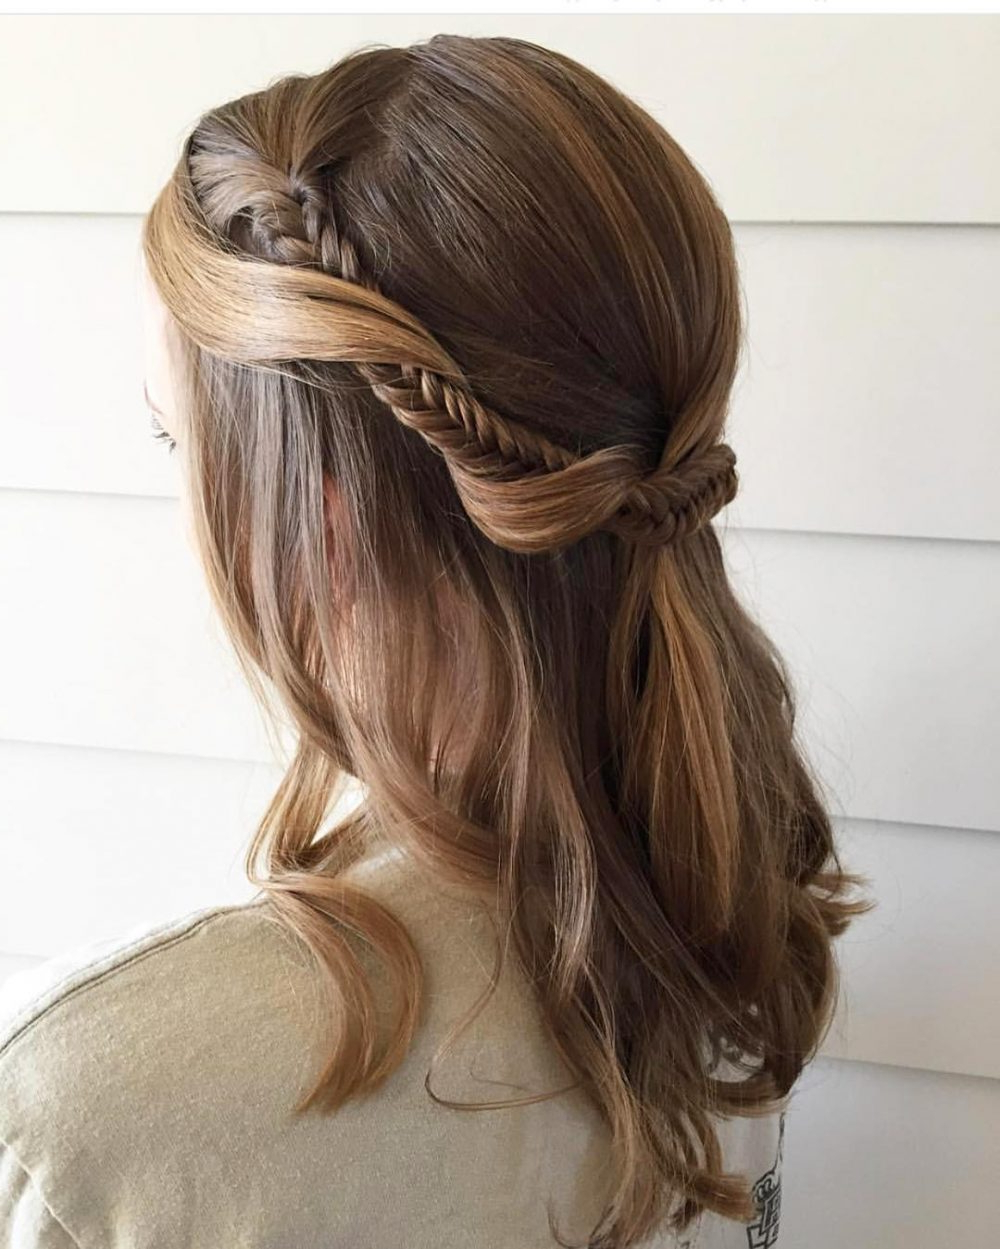 21 Super Easy Updos Anyone Can Do (Trending In 2019) Throughout Well Known Fancy Knot Prom Hairstyles (Gallery 17 of 20)